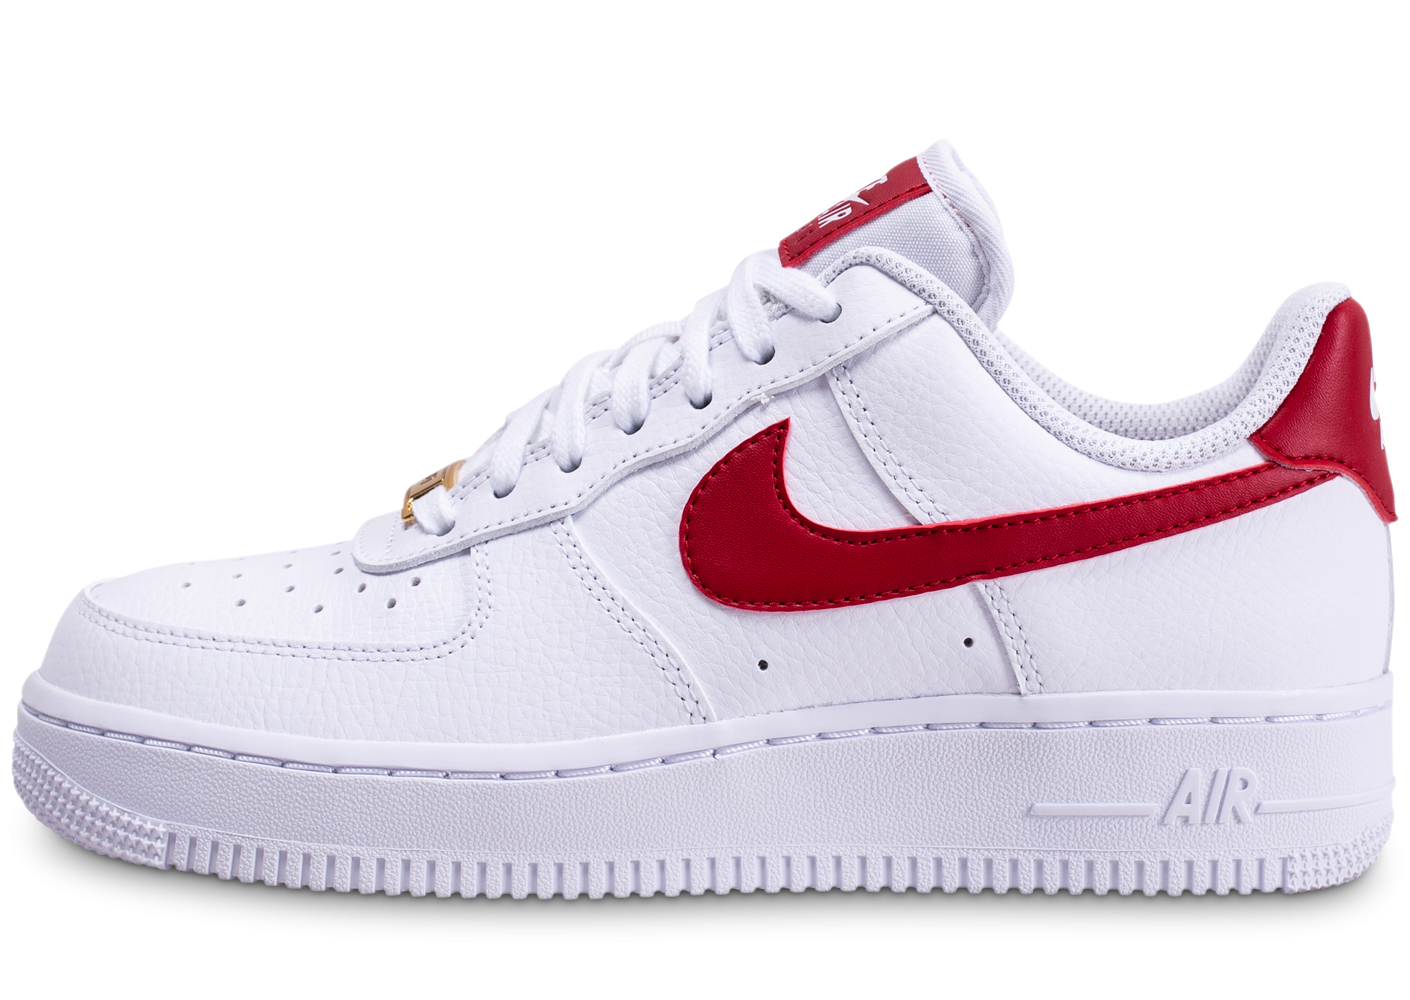 nike air force 1 femme original